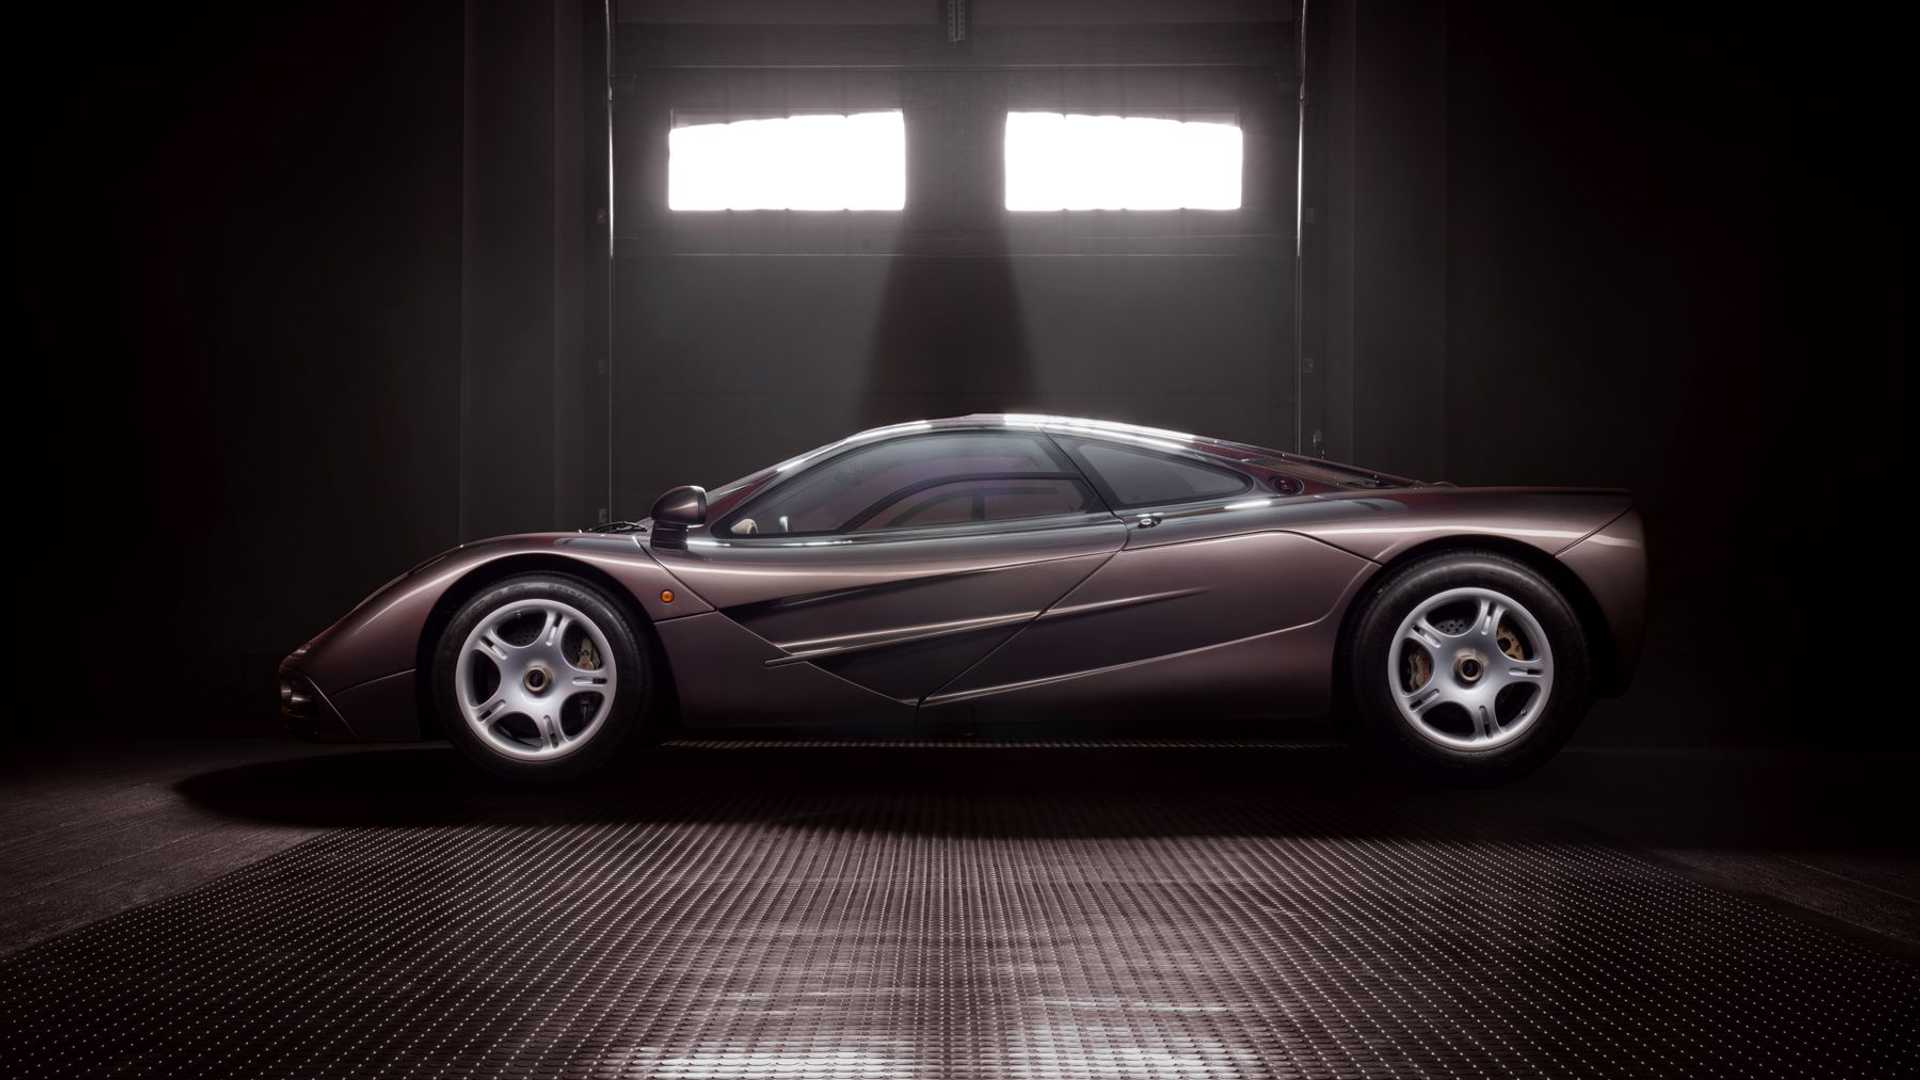 1995 McLaren F1 Gooding And Company Auction 2020 Side